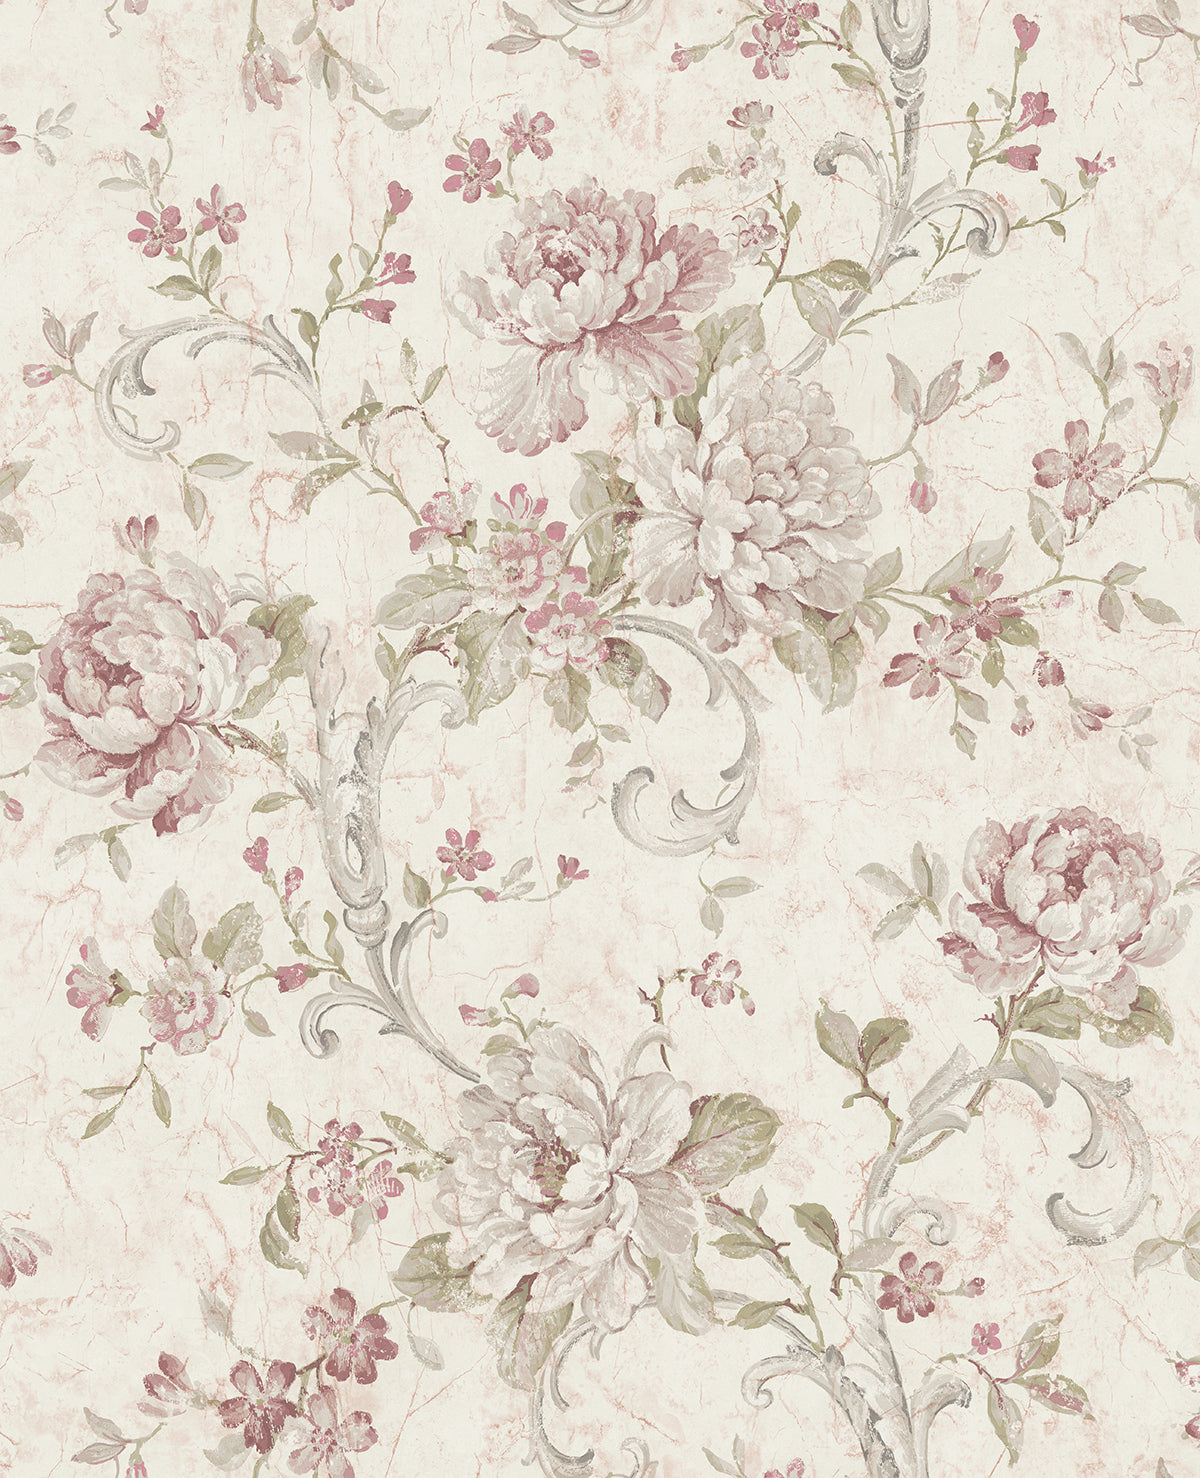 Antiqued Rose Wallpaper In Dusty Mauve From The Vintage Home 2 Collect Burke Decor